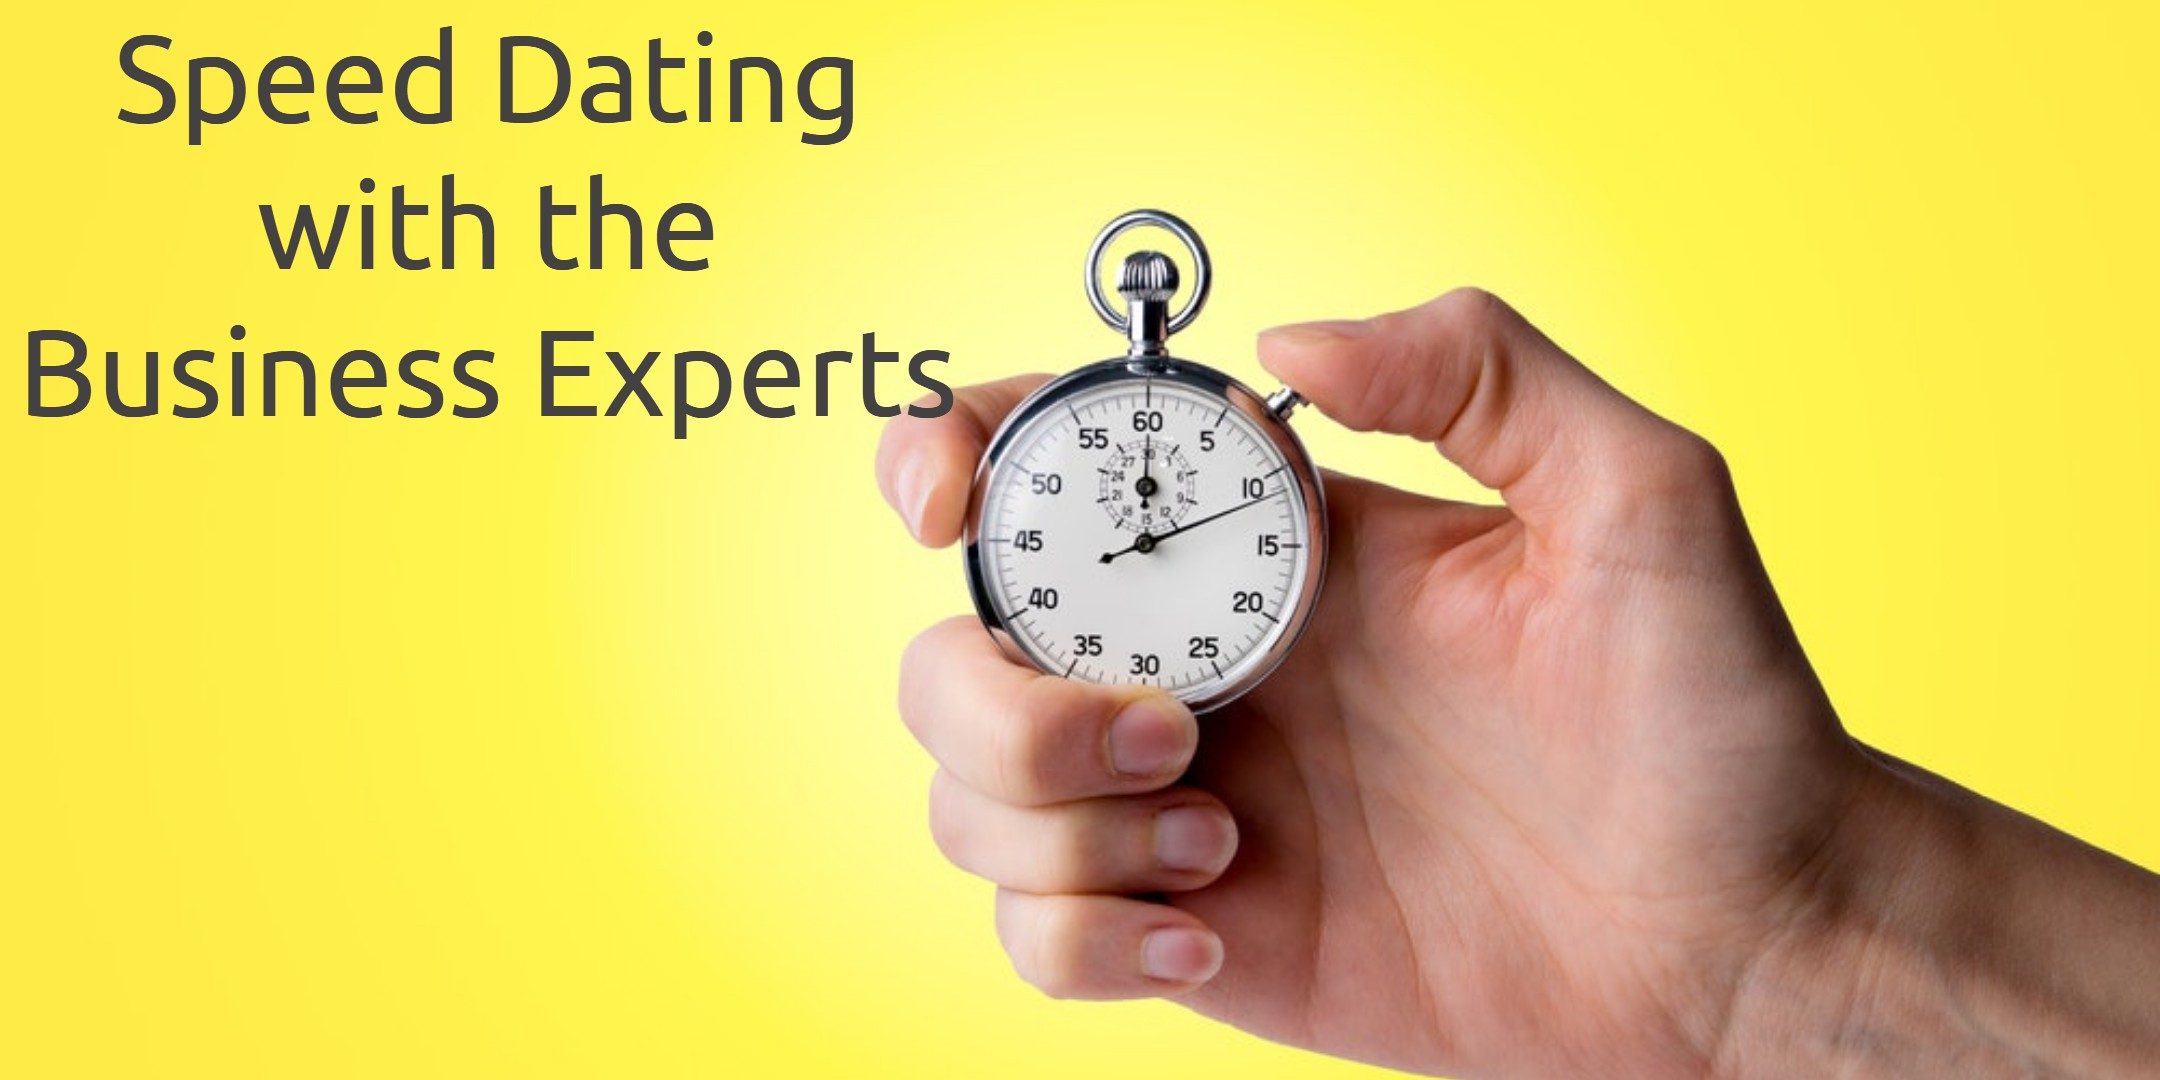 Speed Dating with the Business Experts